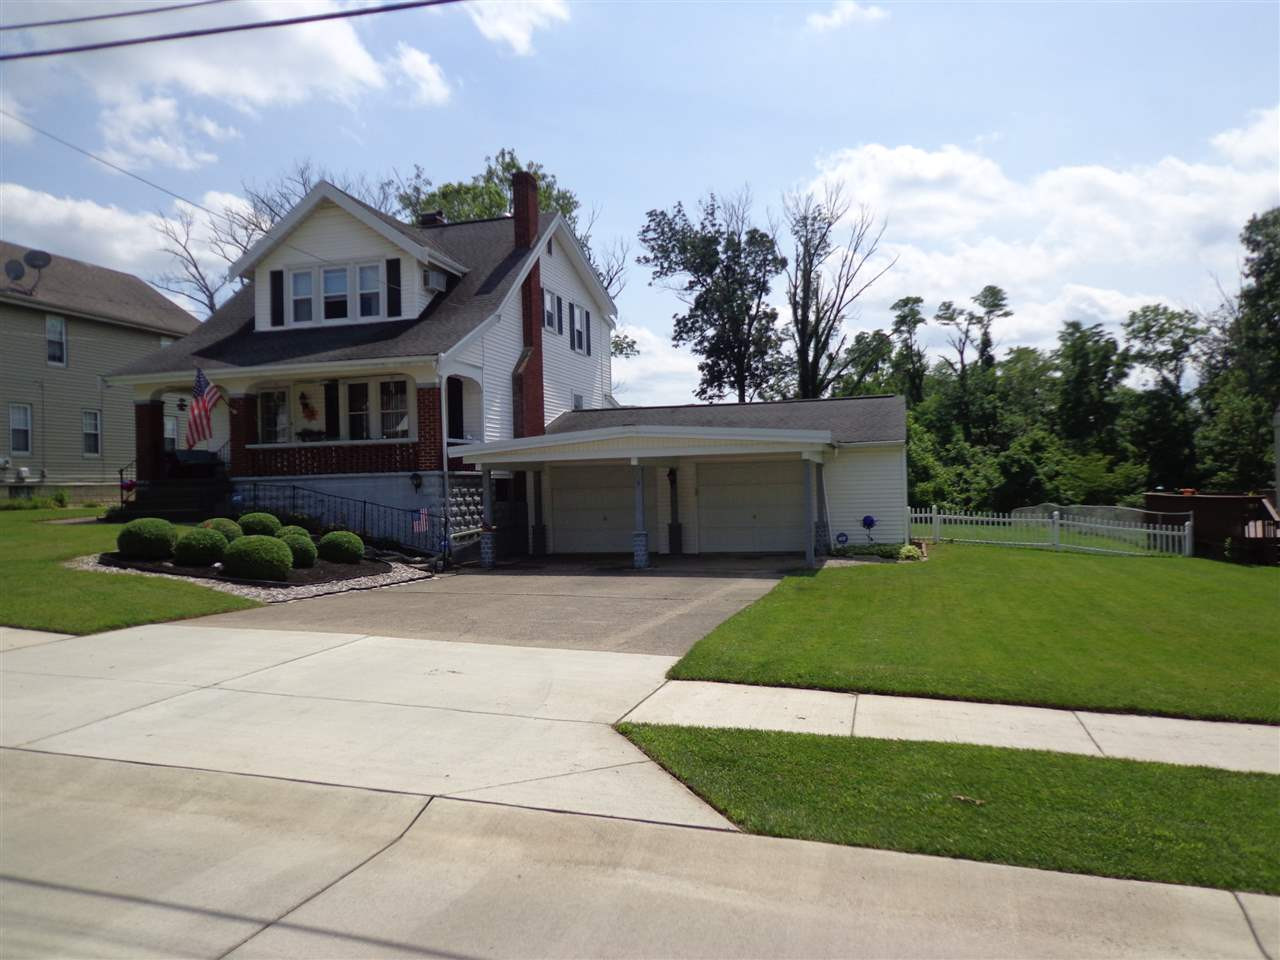 Photo 3 for 129 Lyndale Rd Edgewood, KY 41017